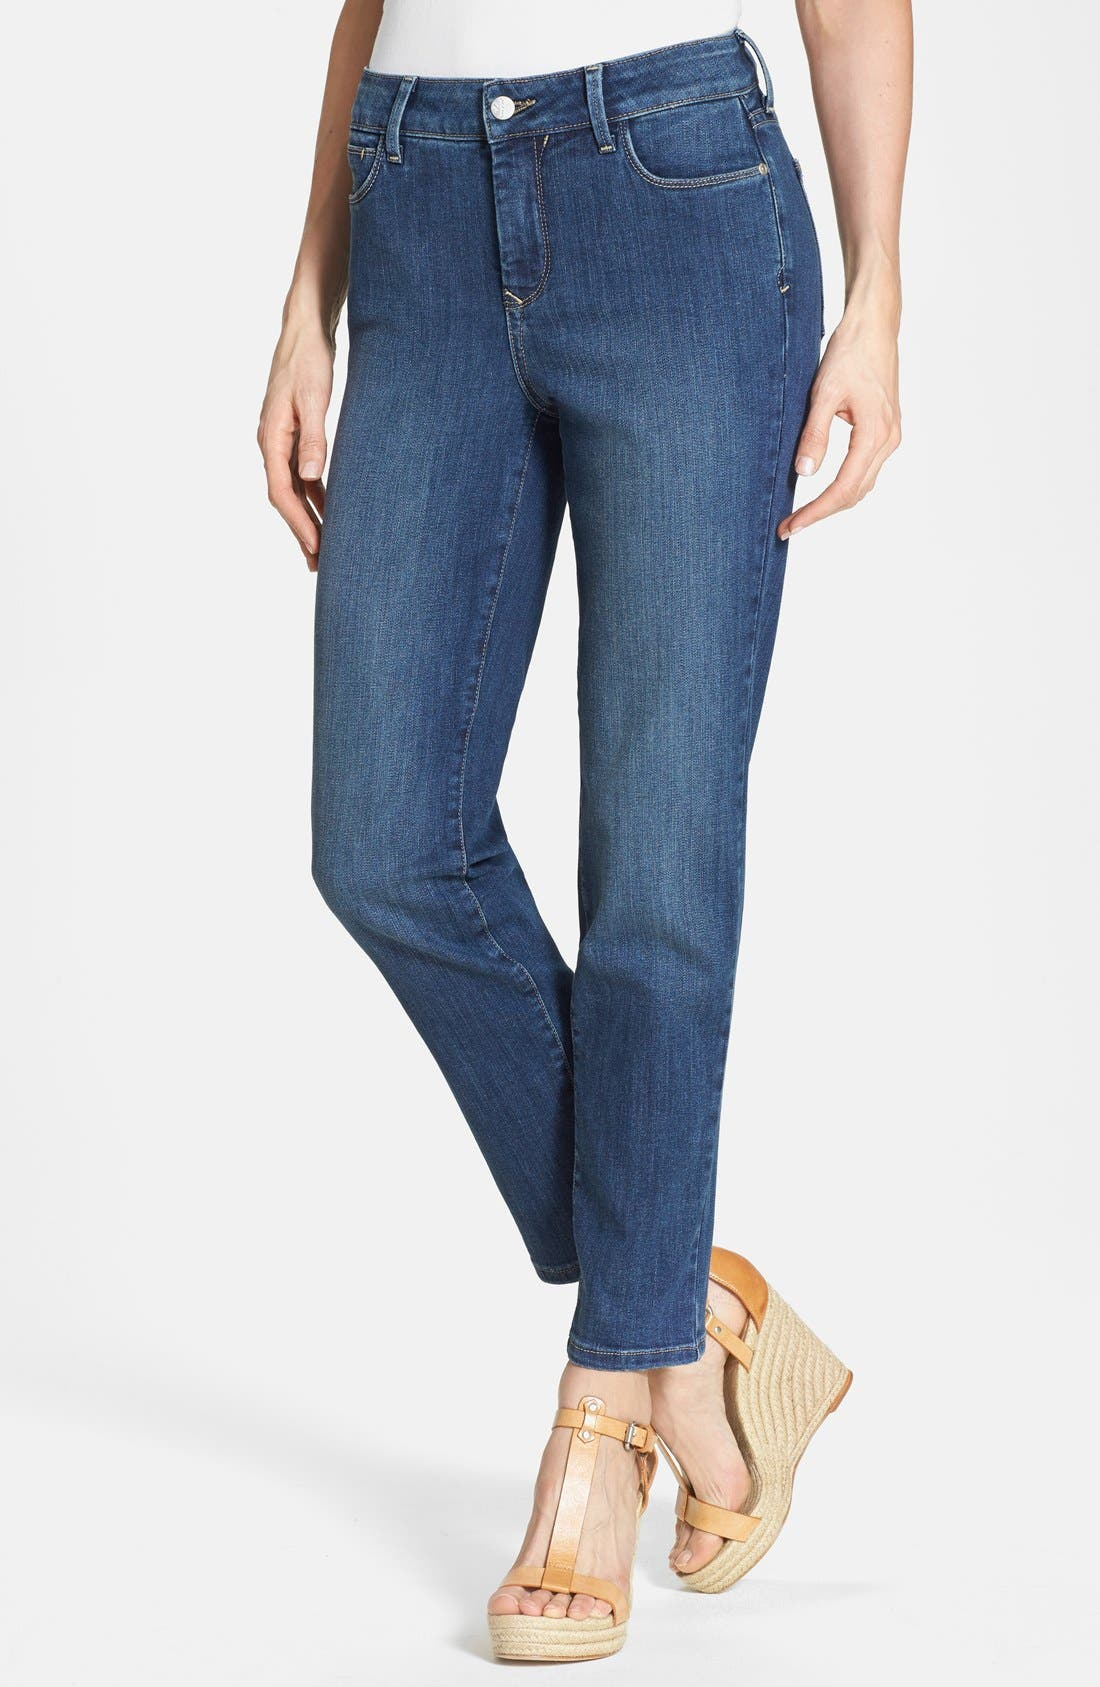 Alternate Image 1 Selected - NYDJ 'Clarissa' Stretch Ankle Skinny Jeans (Pittsburgh) (Petite)